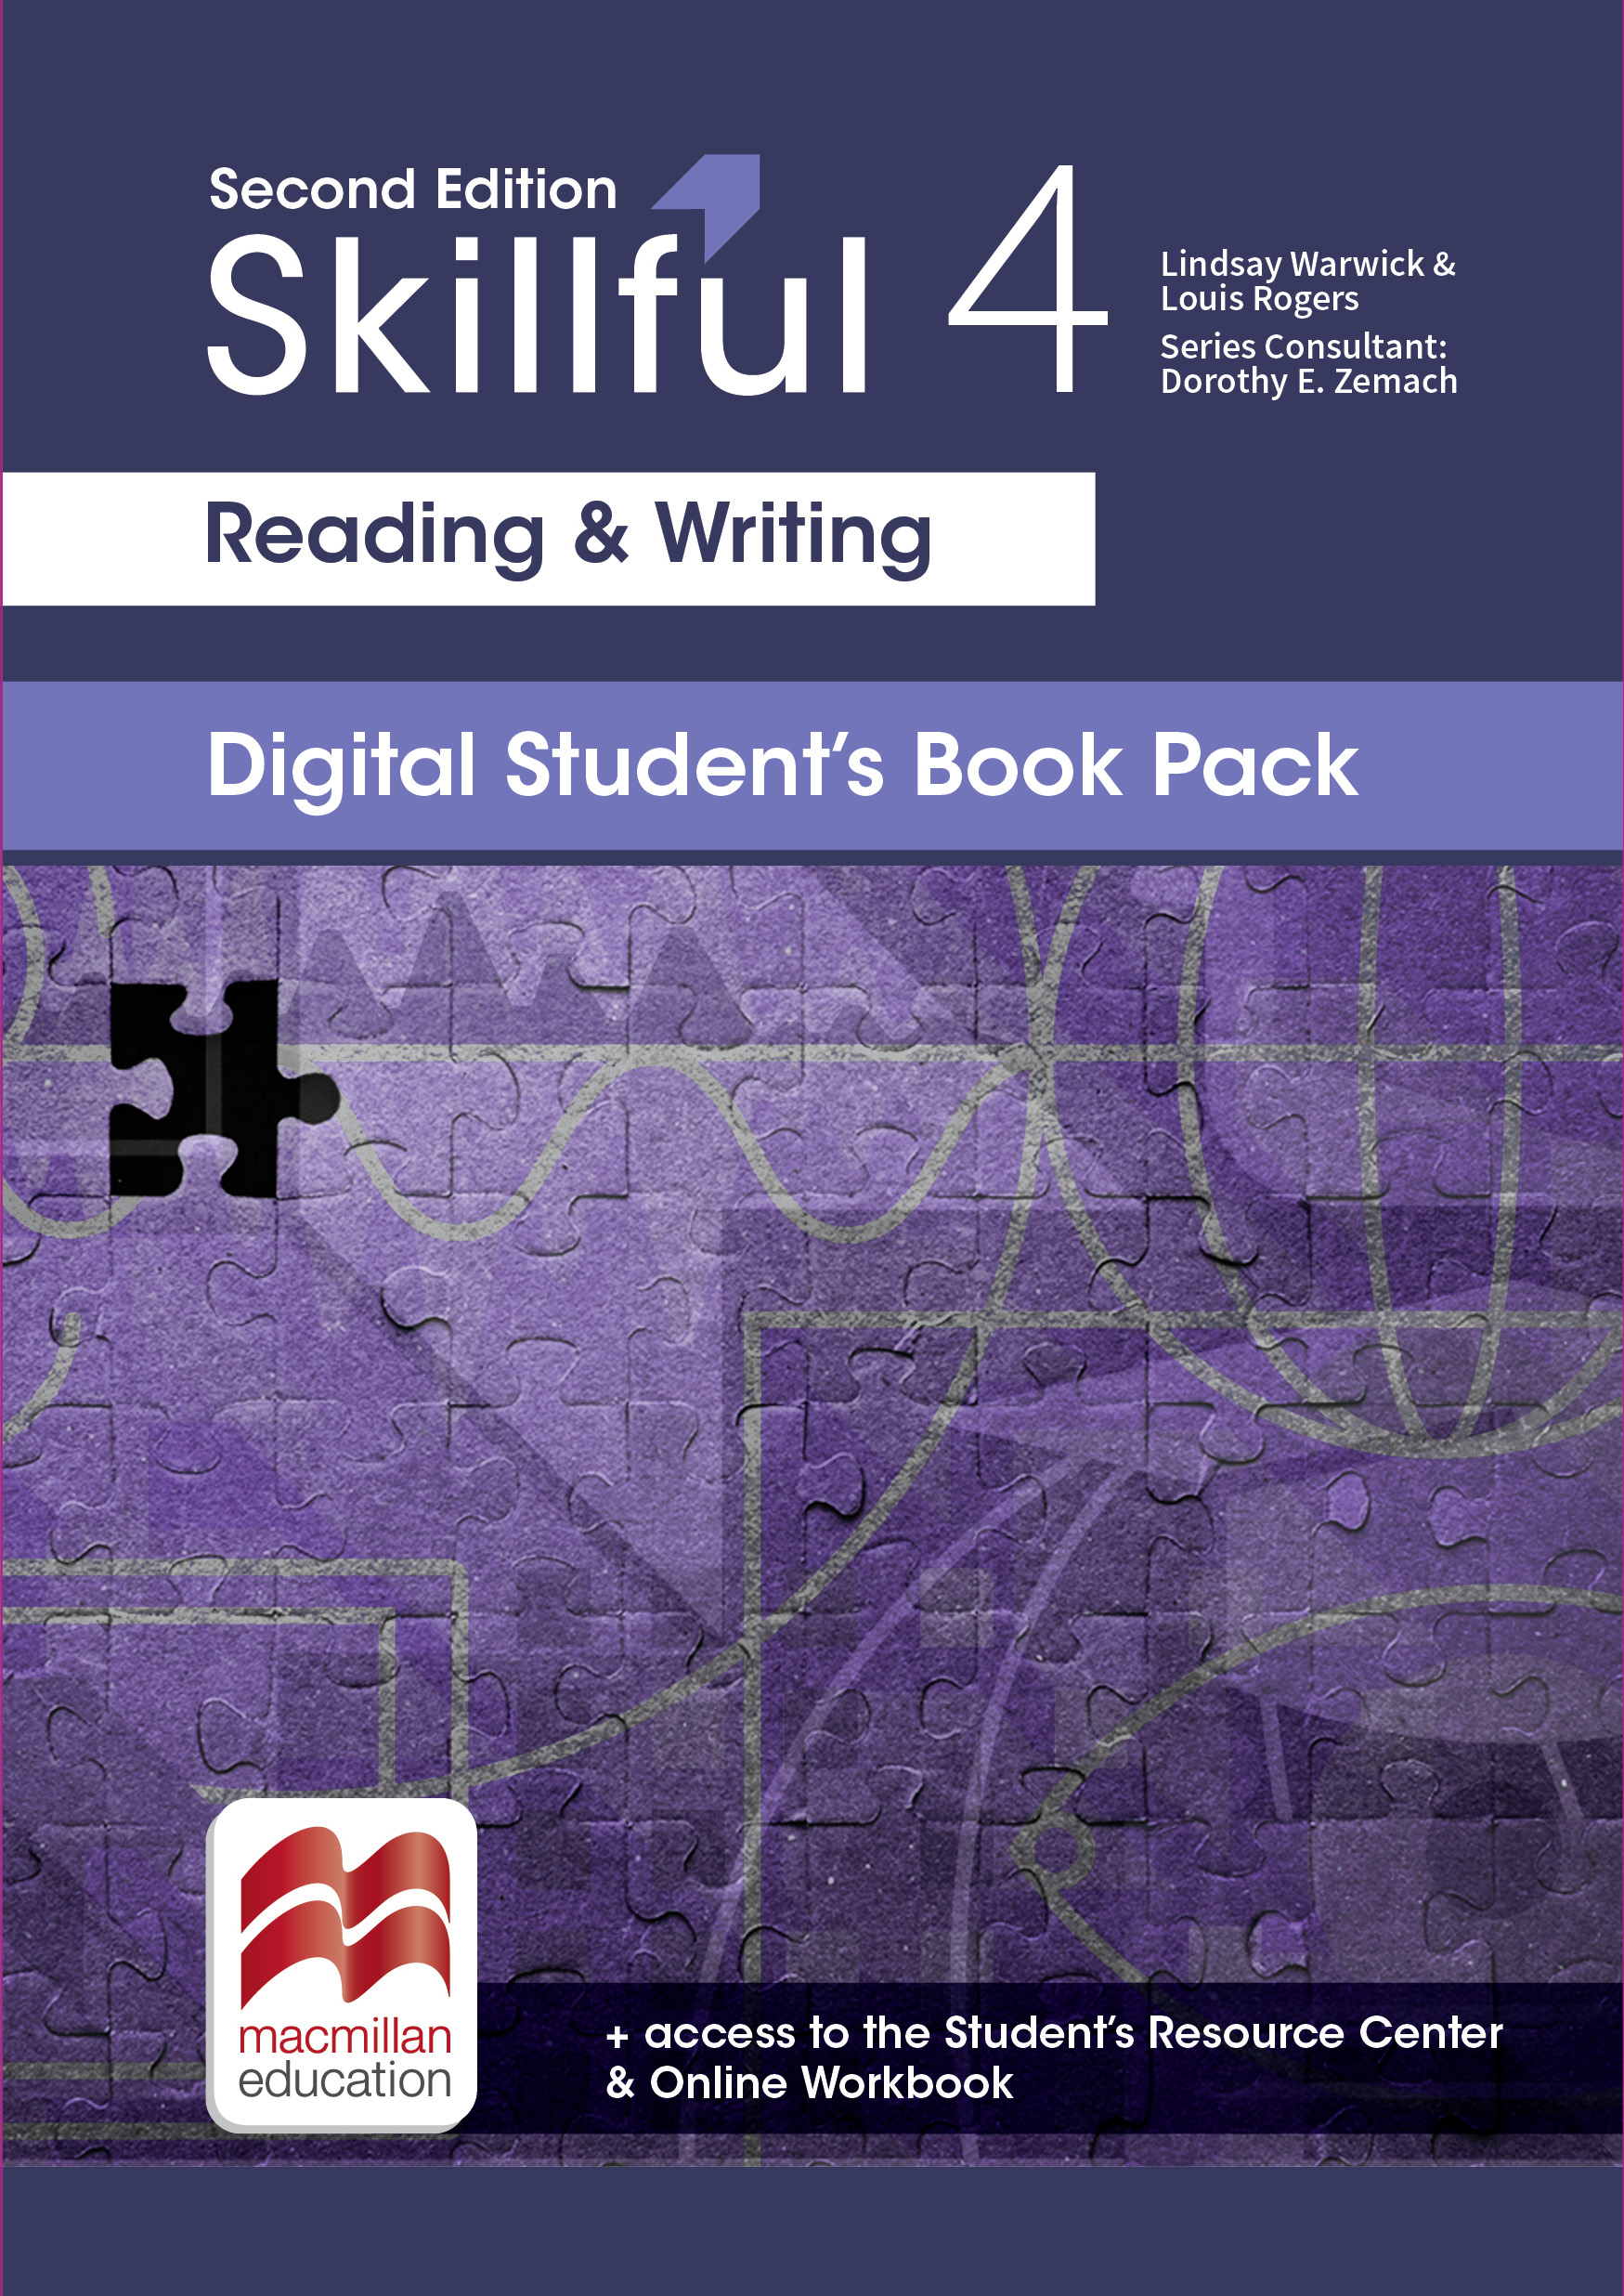 Skillful Second Edition Level 4 Reading and Writing Premium Digital Student's Book Pack